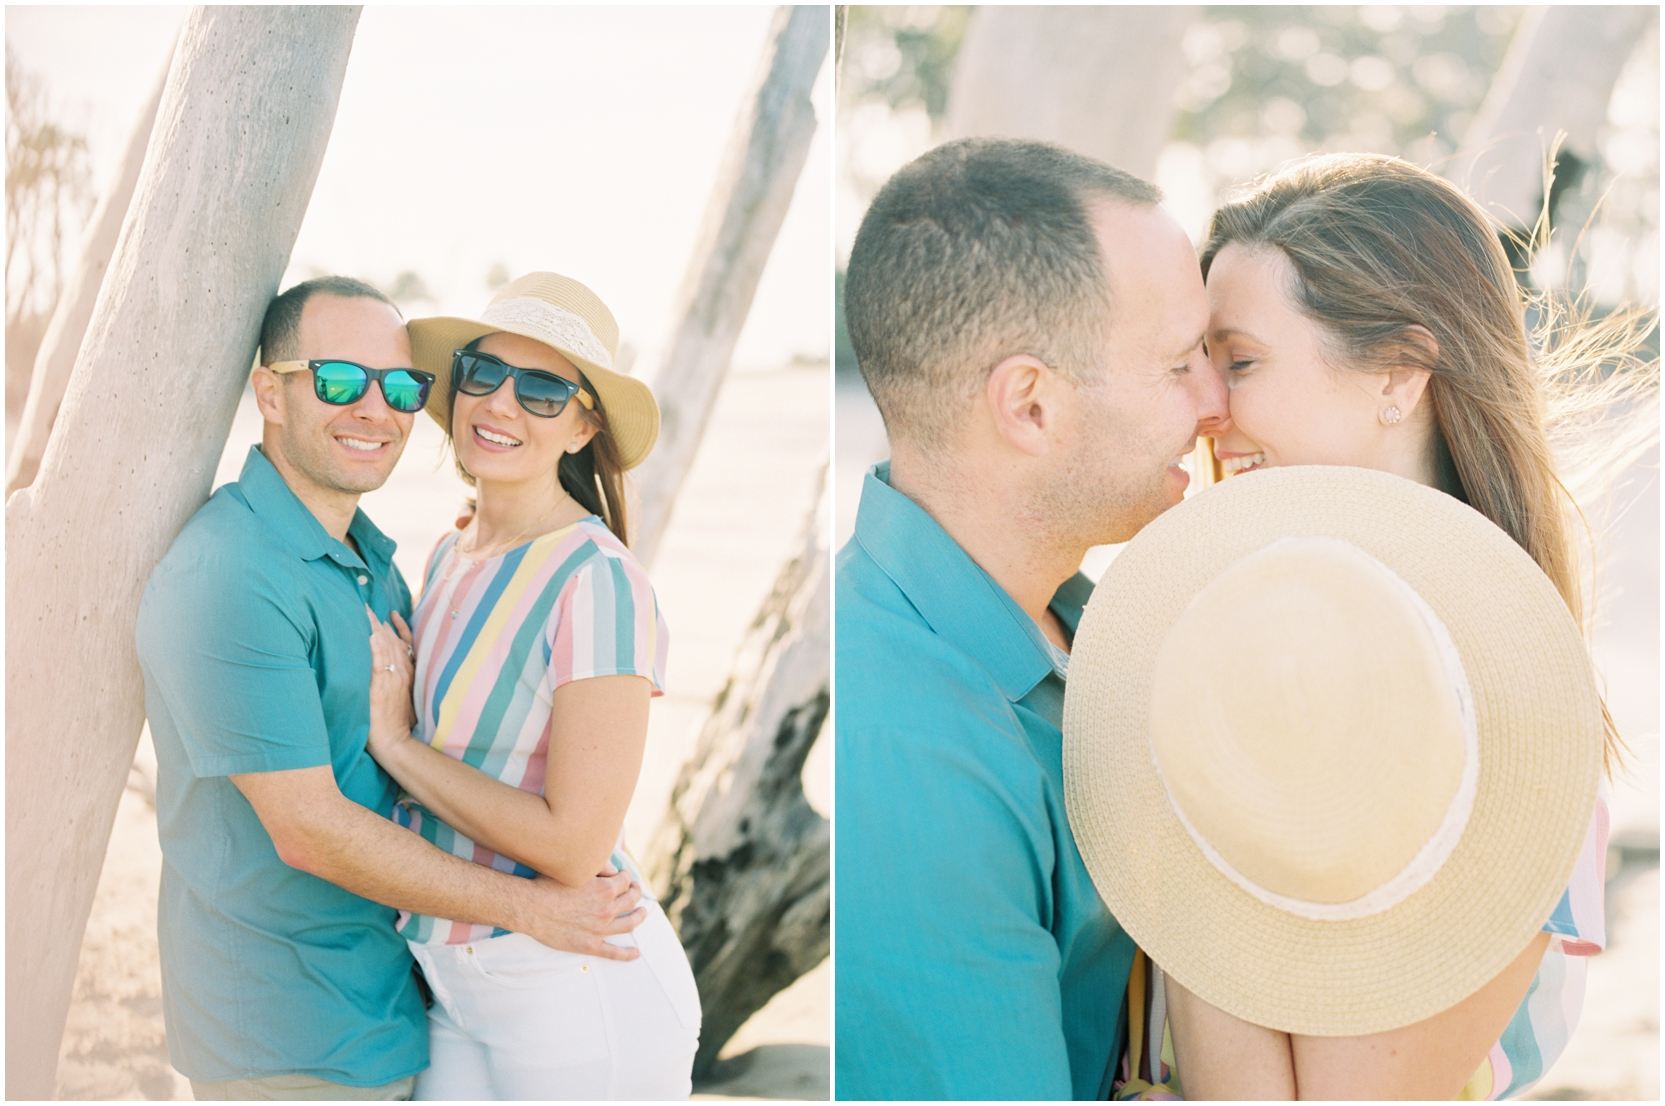 Lisa Silva Photography -Engagement Session at Big Talbot Island- Jacksonville and North East Florida Fine Art Film Photographer_0023.jpg